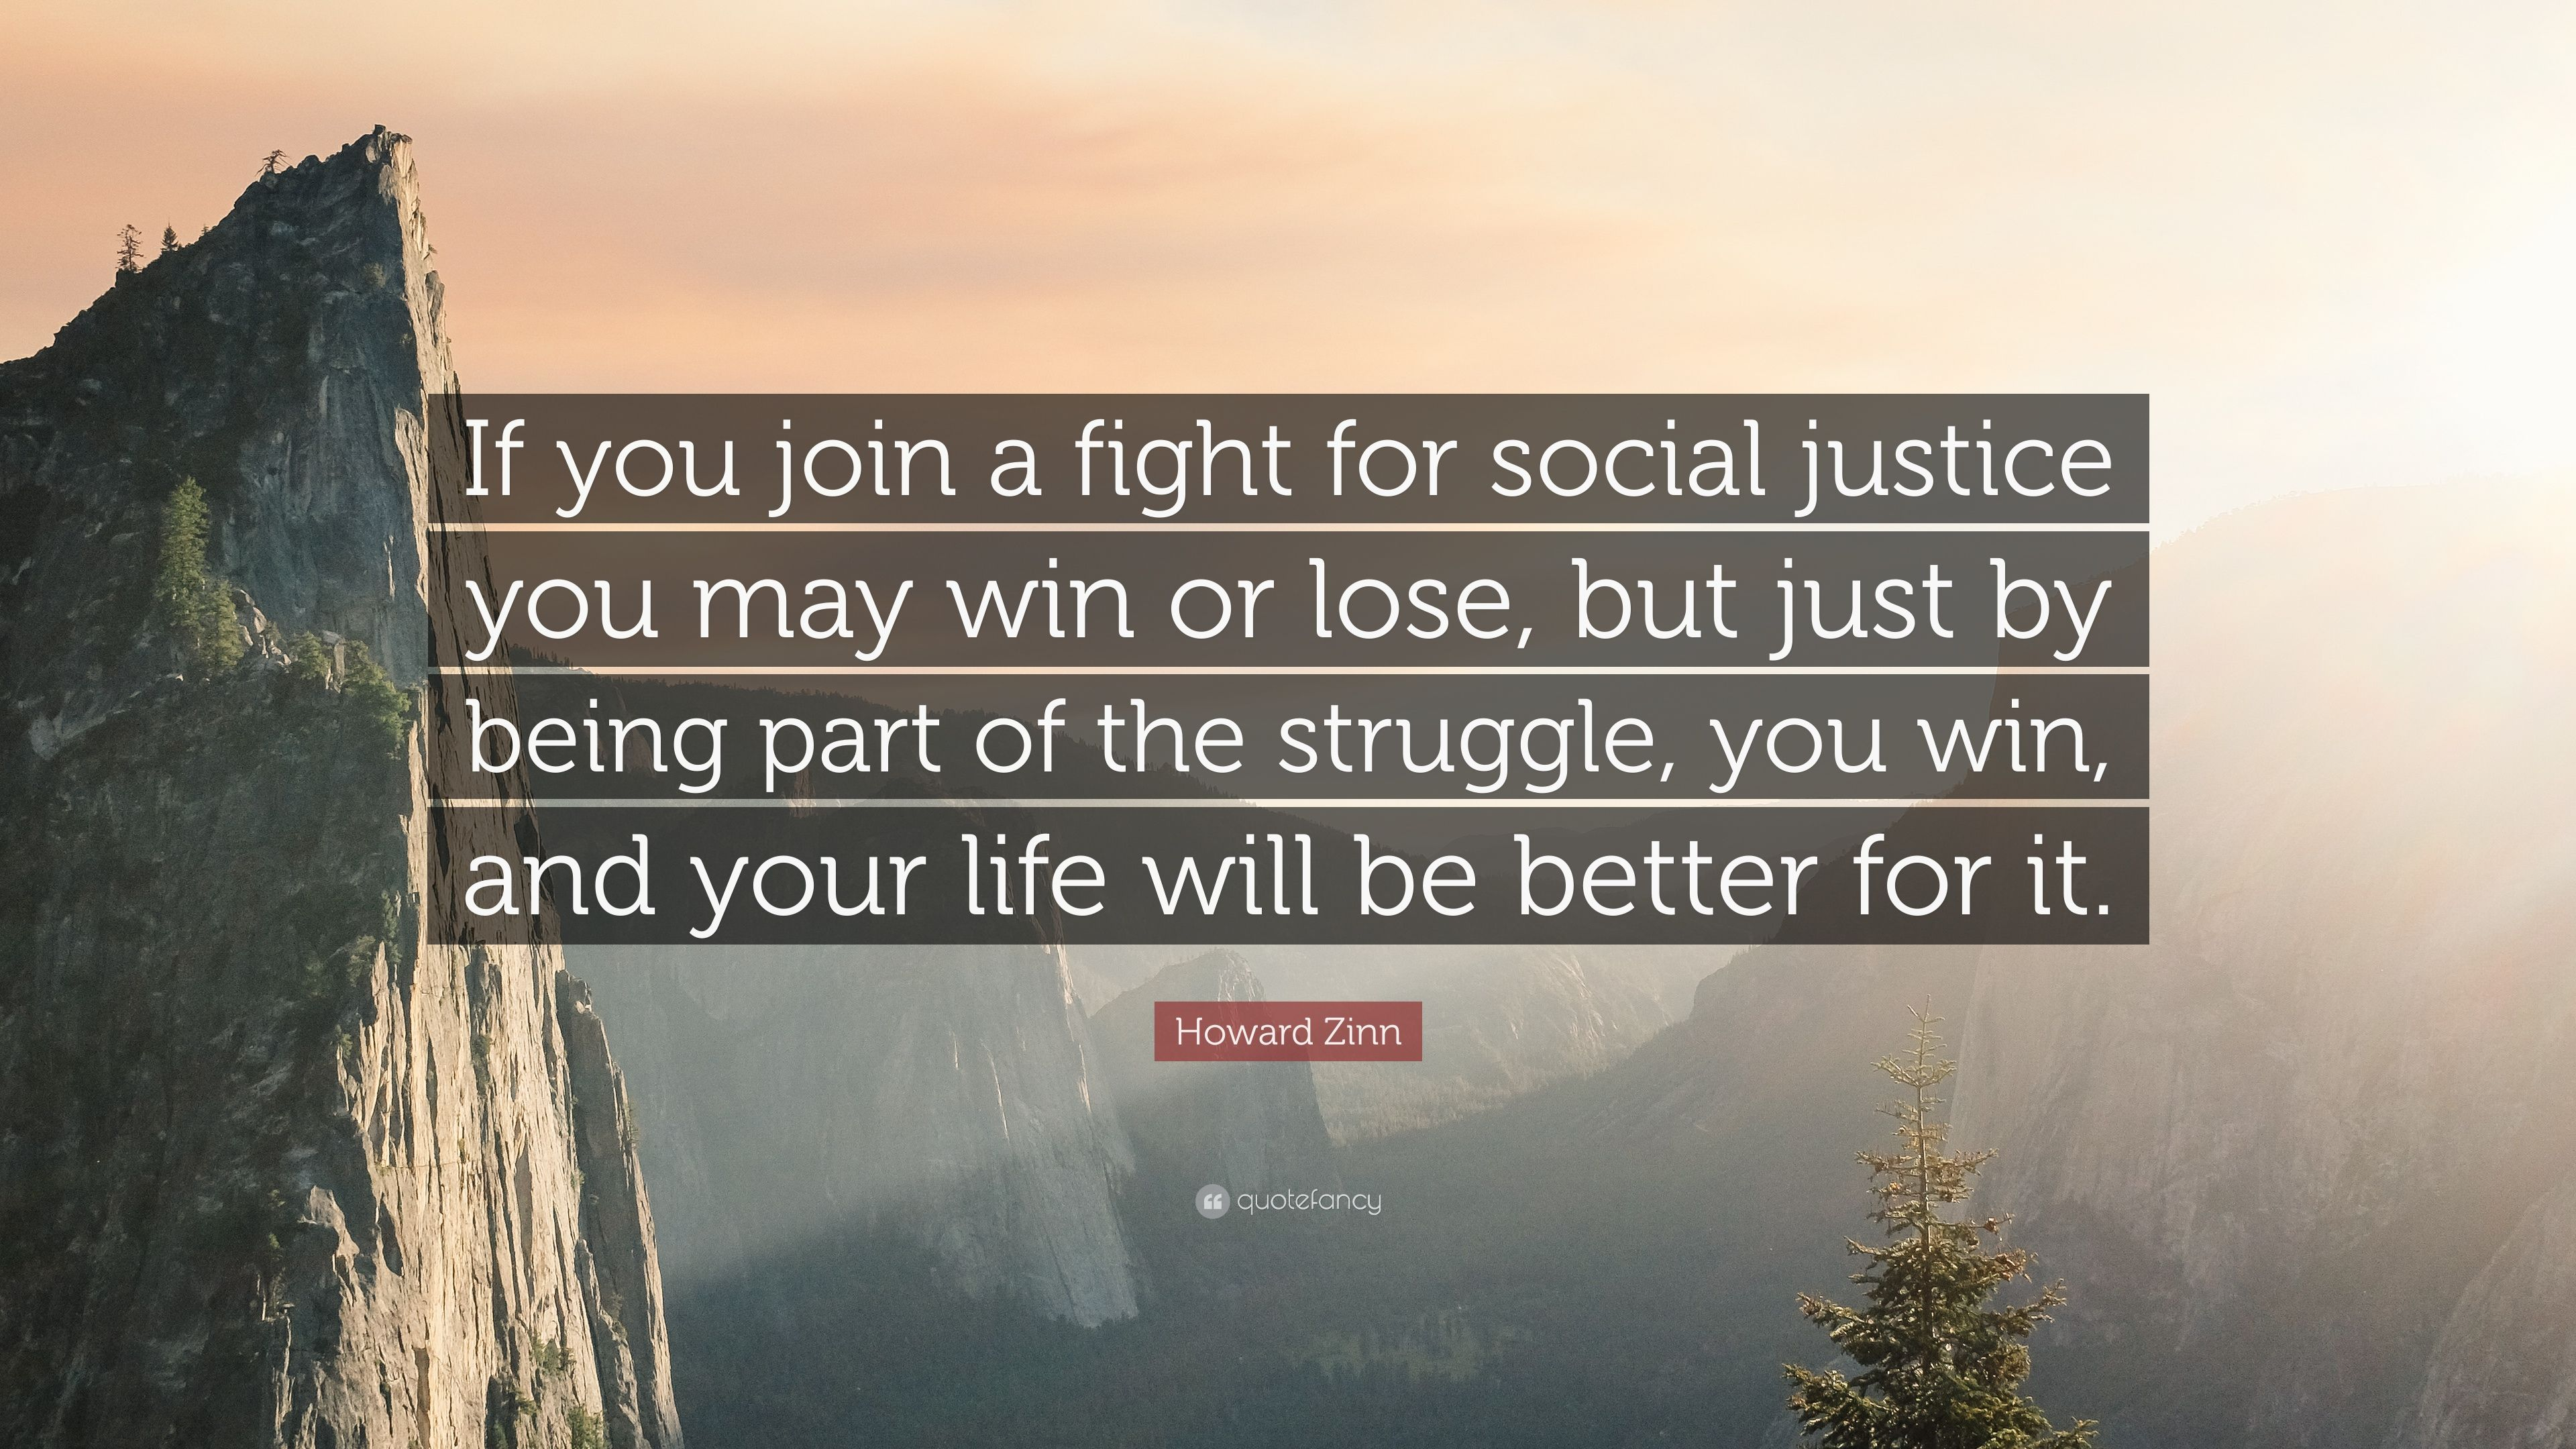 Social Justice Quotes Captivating Image Result For Social Justice Howard Zinn Quote  Words . Design Ideas